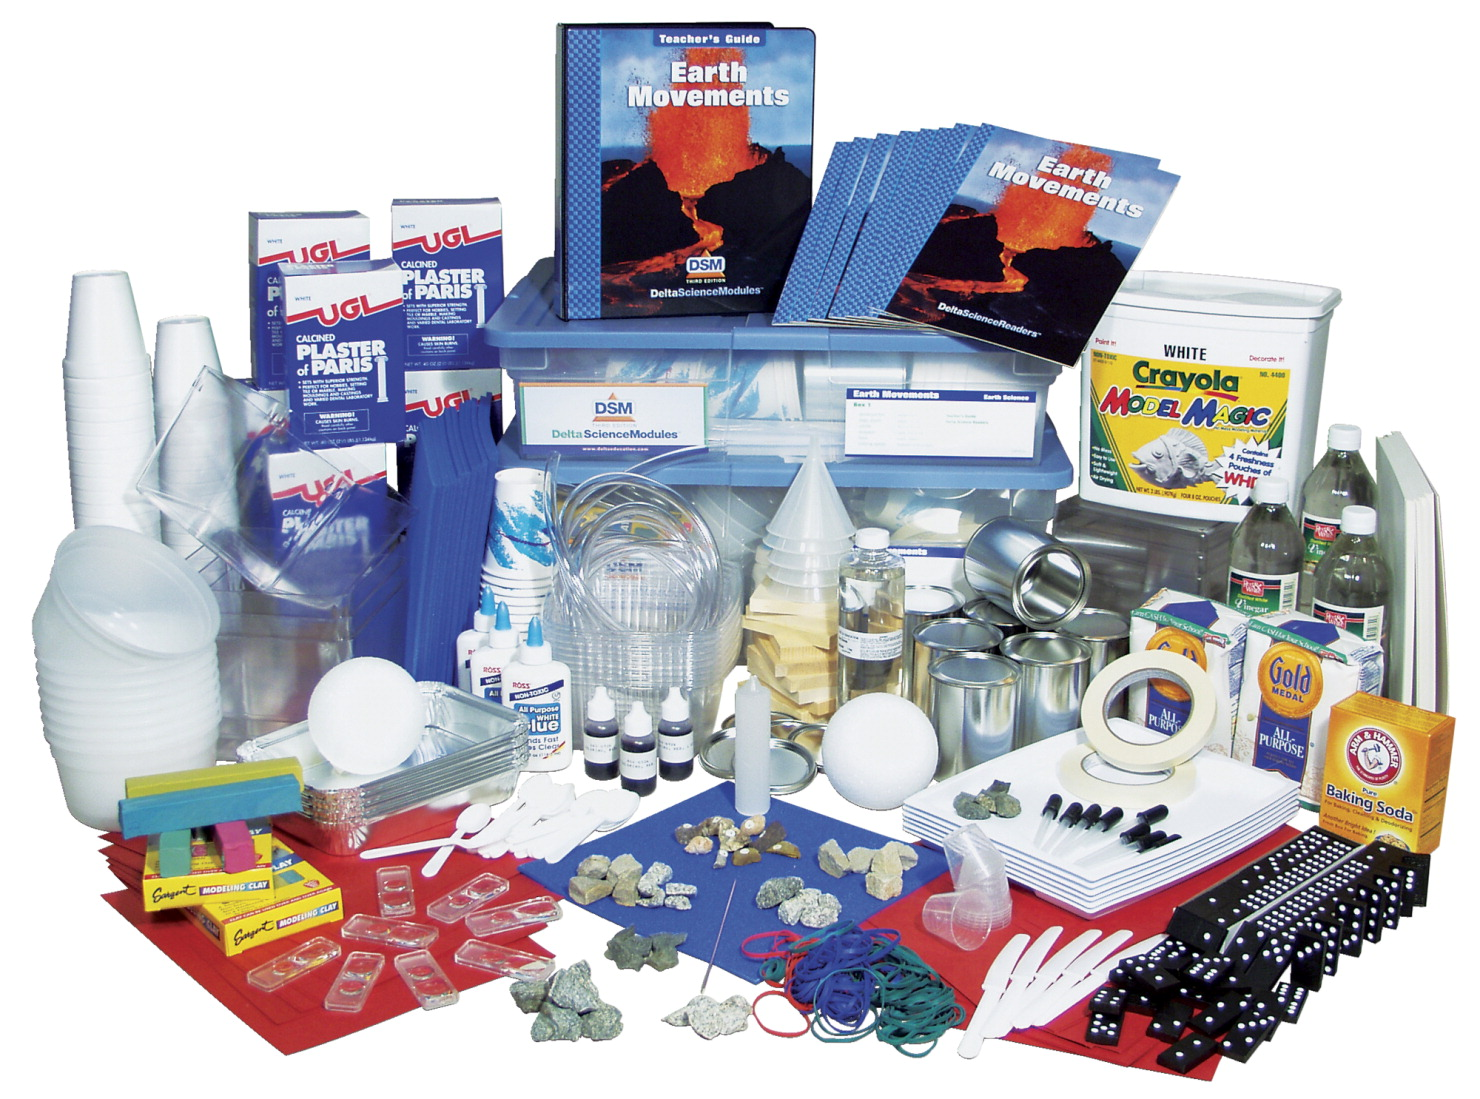 Delta Science Module DSM-3 Earth Movements Science Module Complete Kit